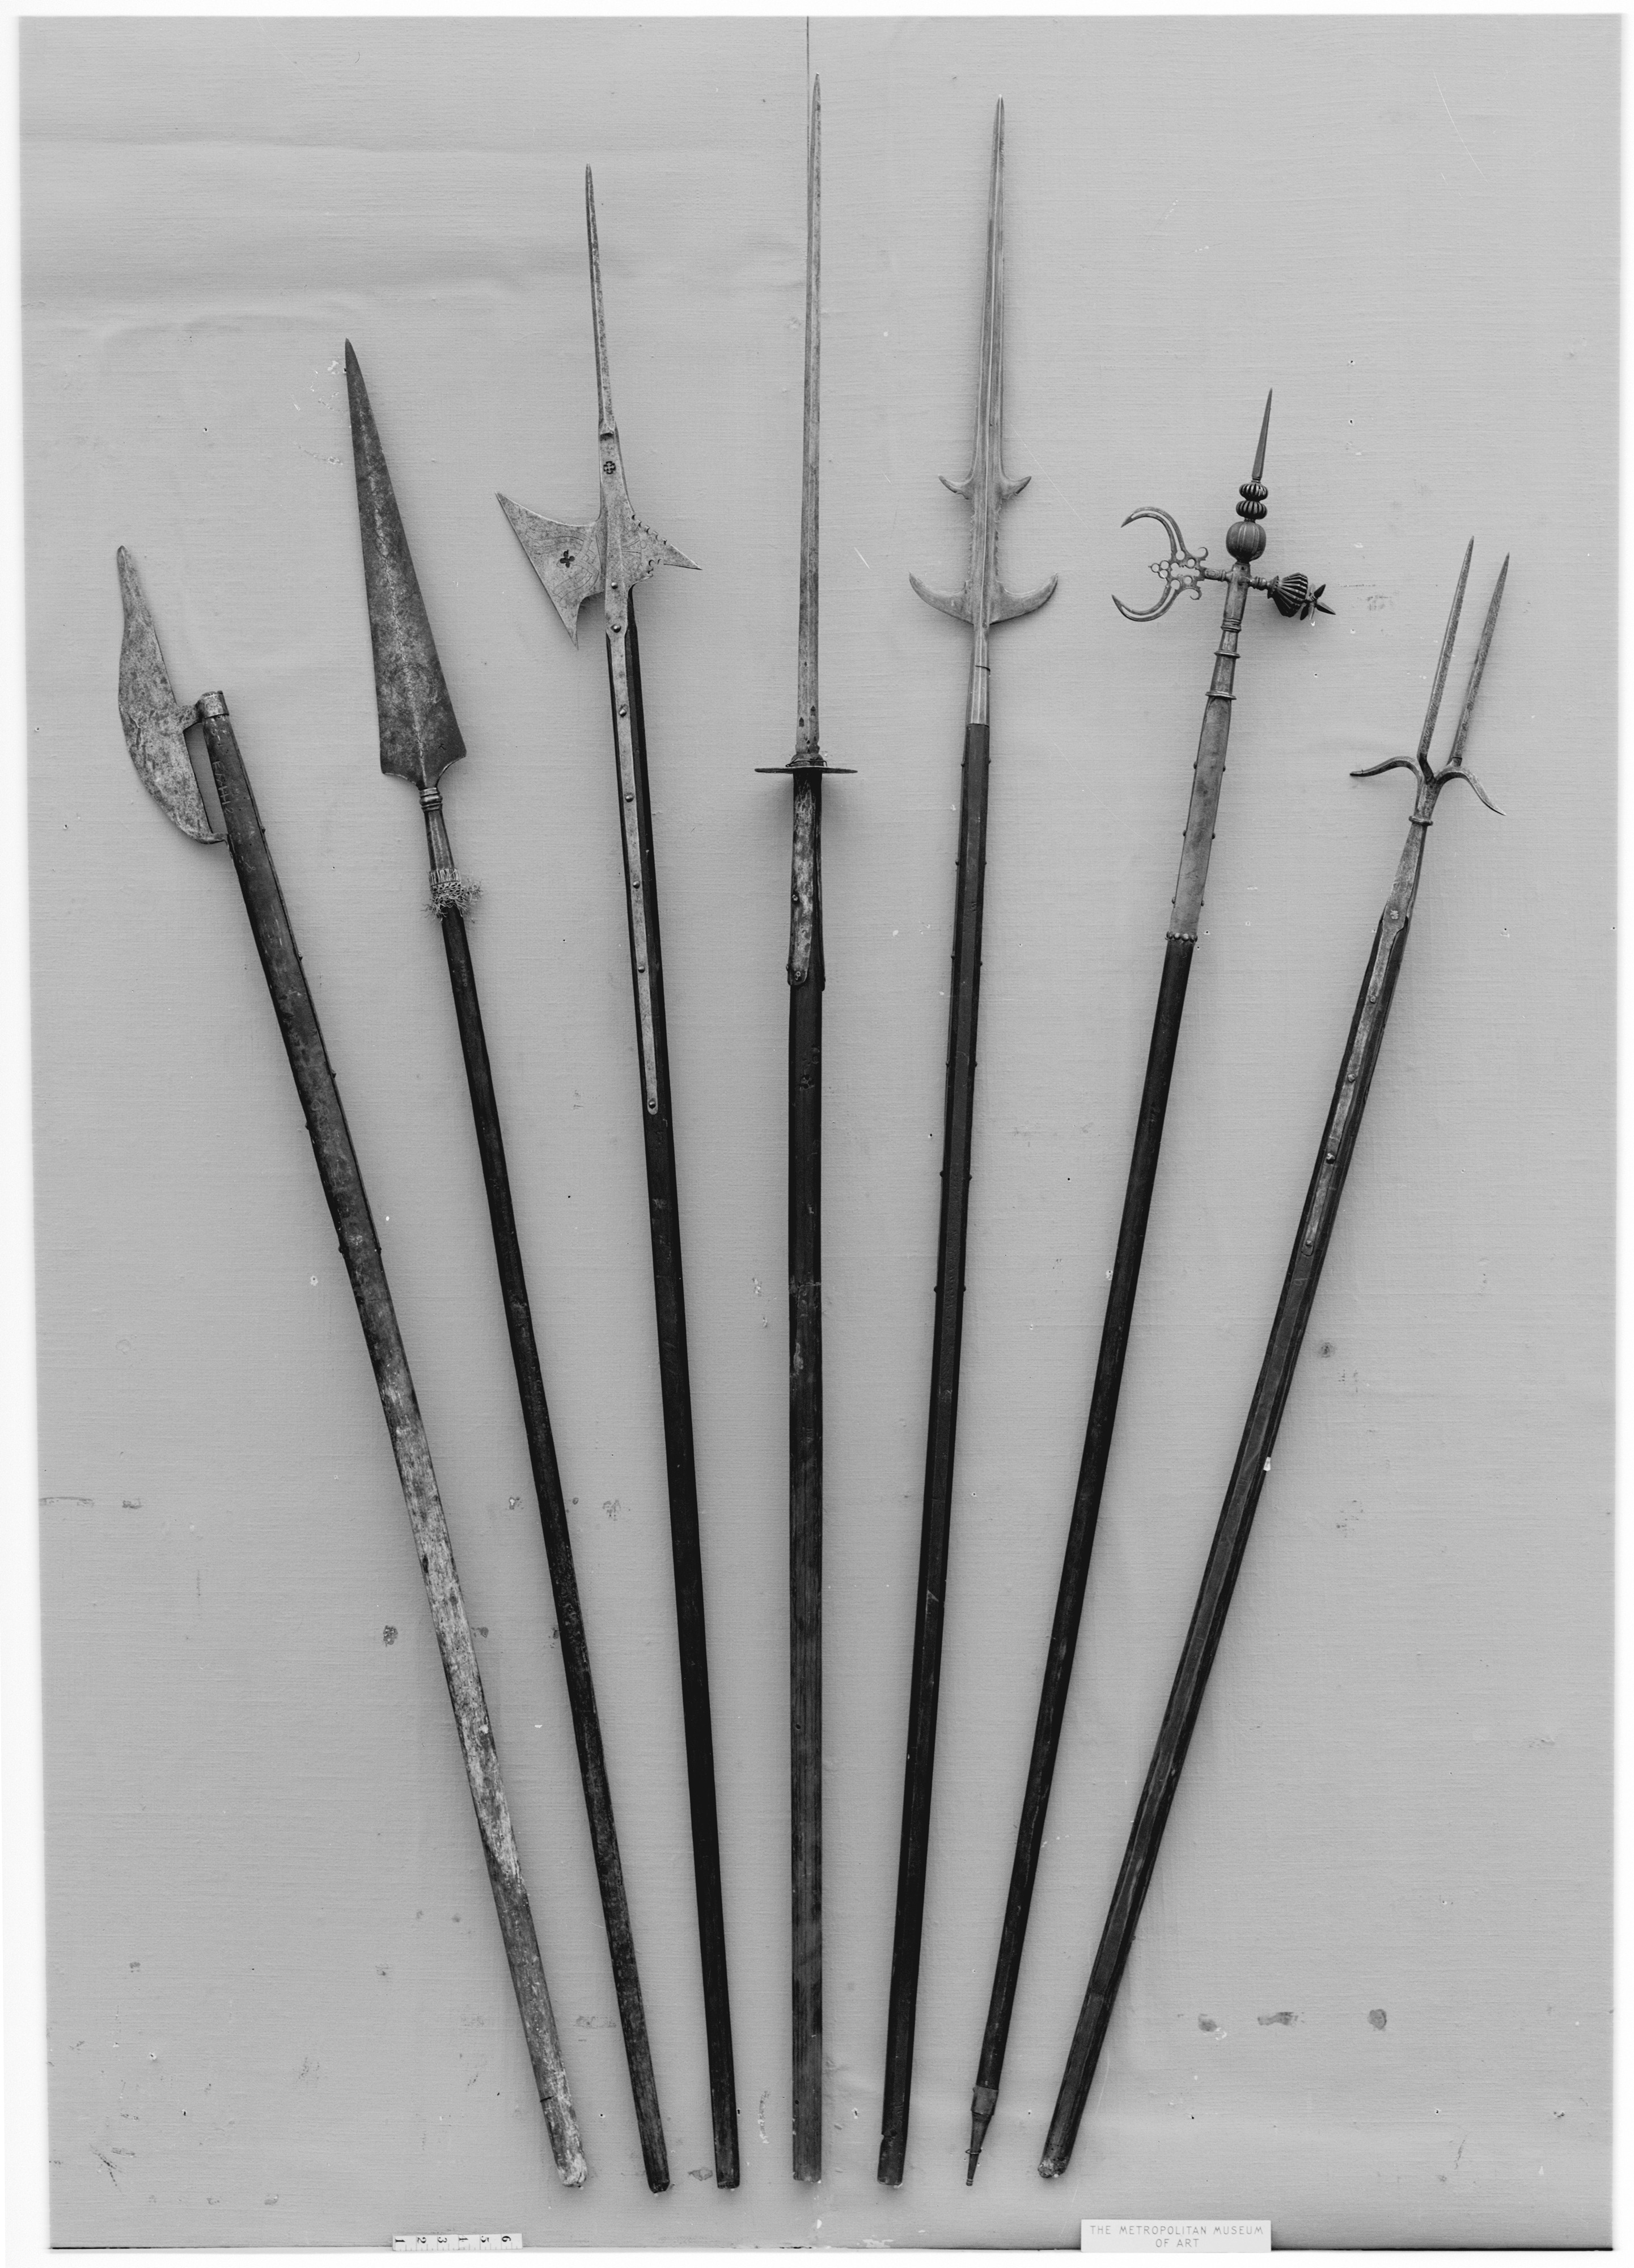 16th century weapons essay example He wrote in his essay on solitariness, altogether ours note 18 of truth and reason than the example and idea of the opinions and customs of the country we live in , having no other weapons than bows or wooden swords.